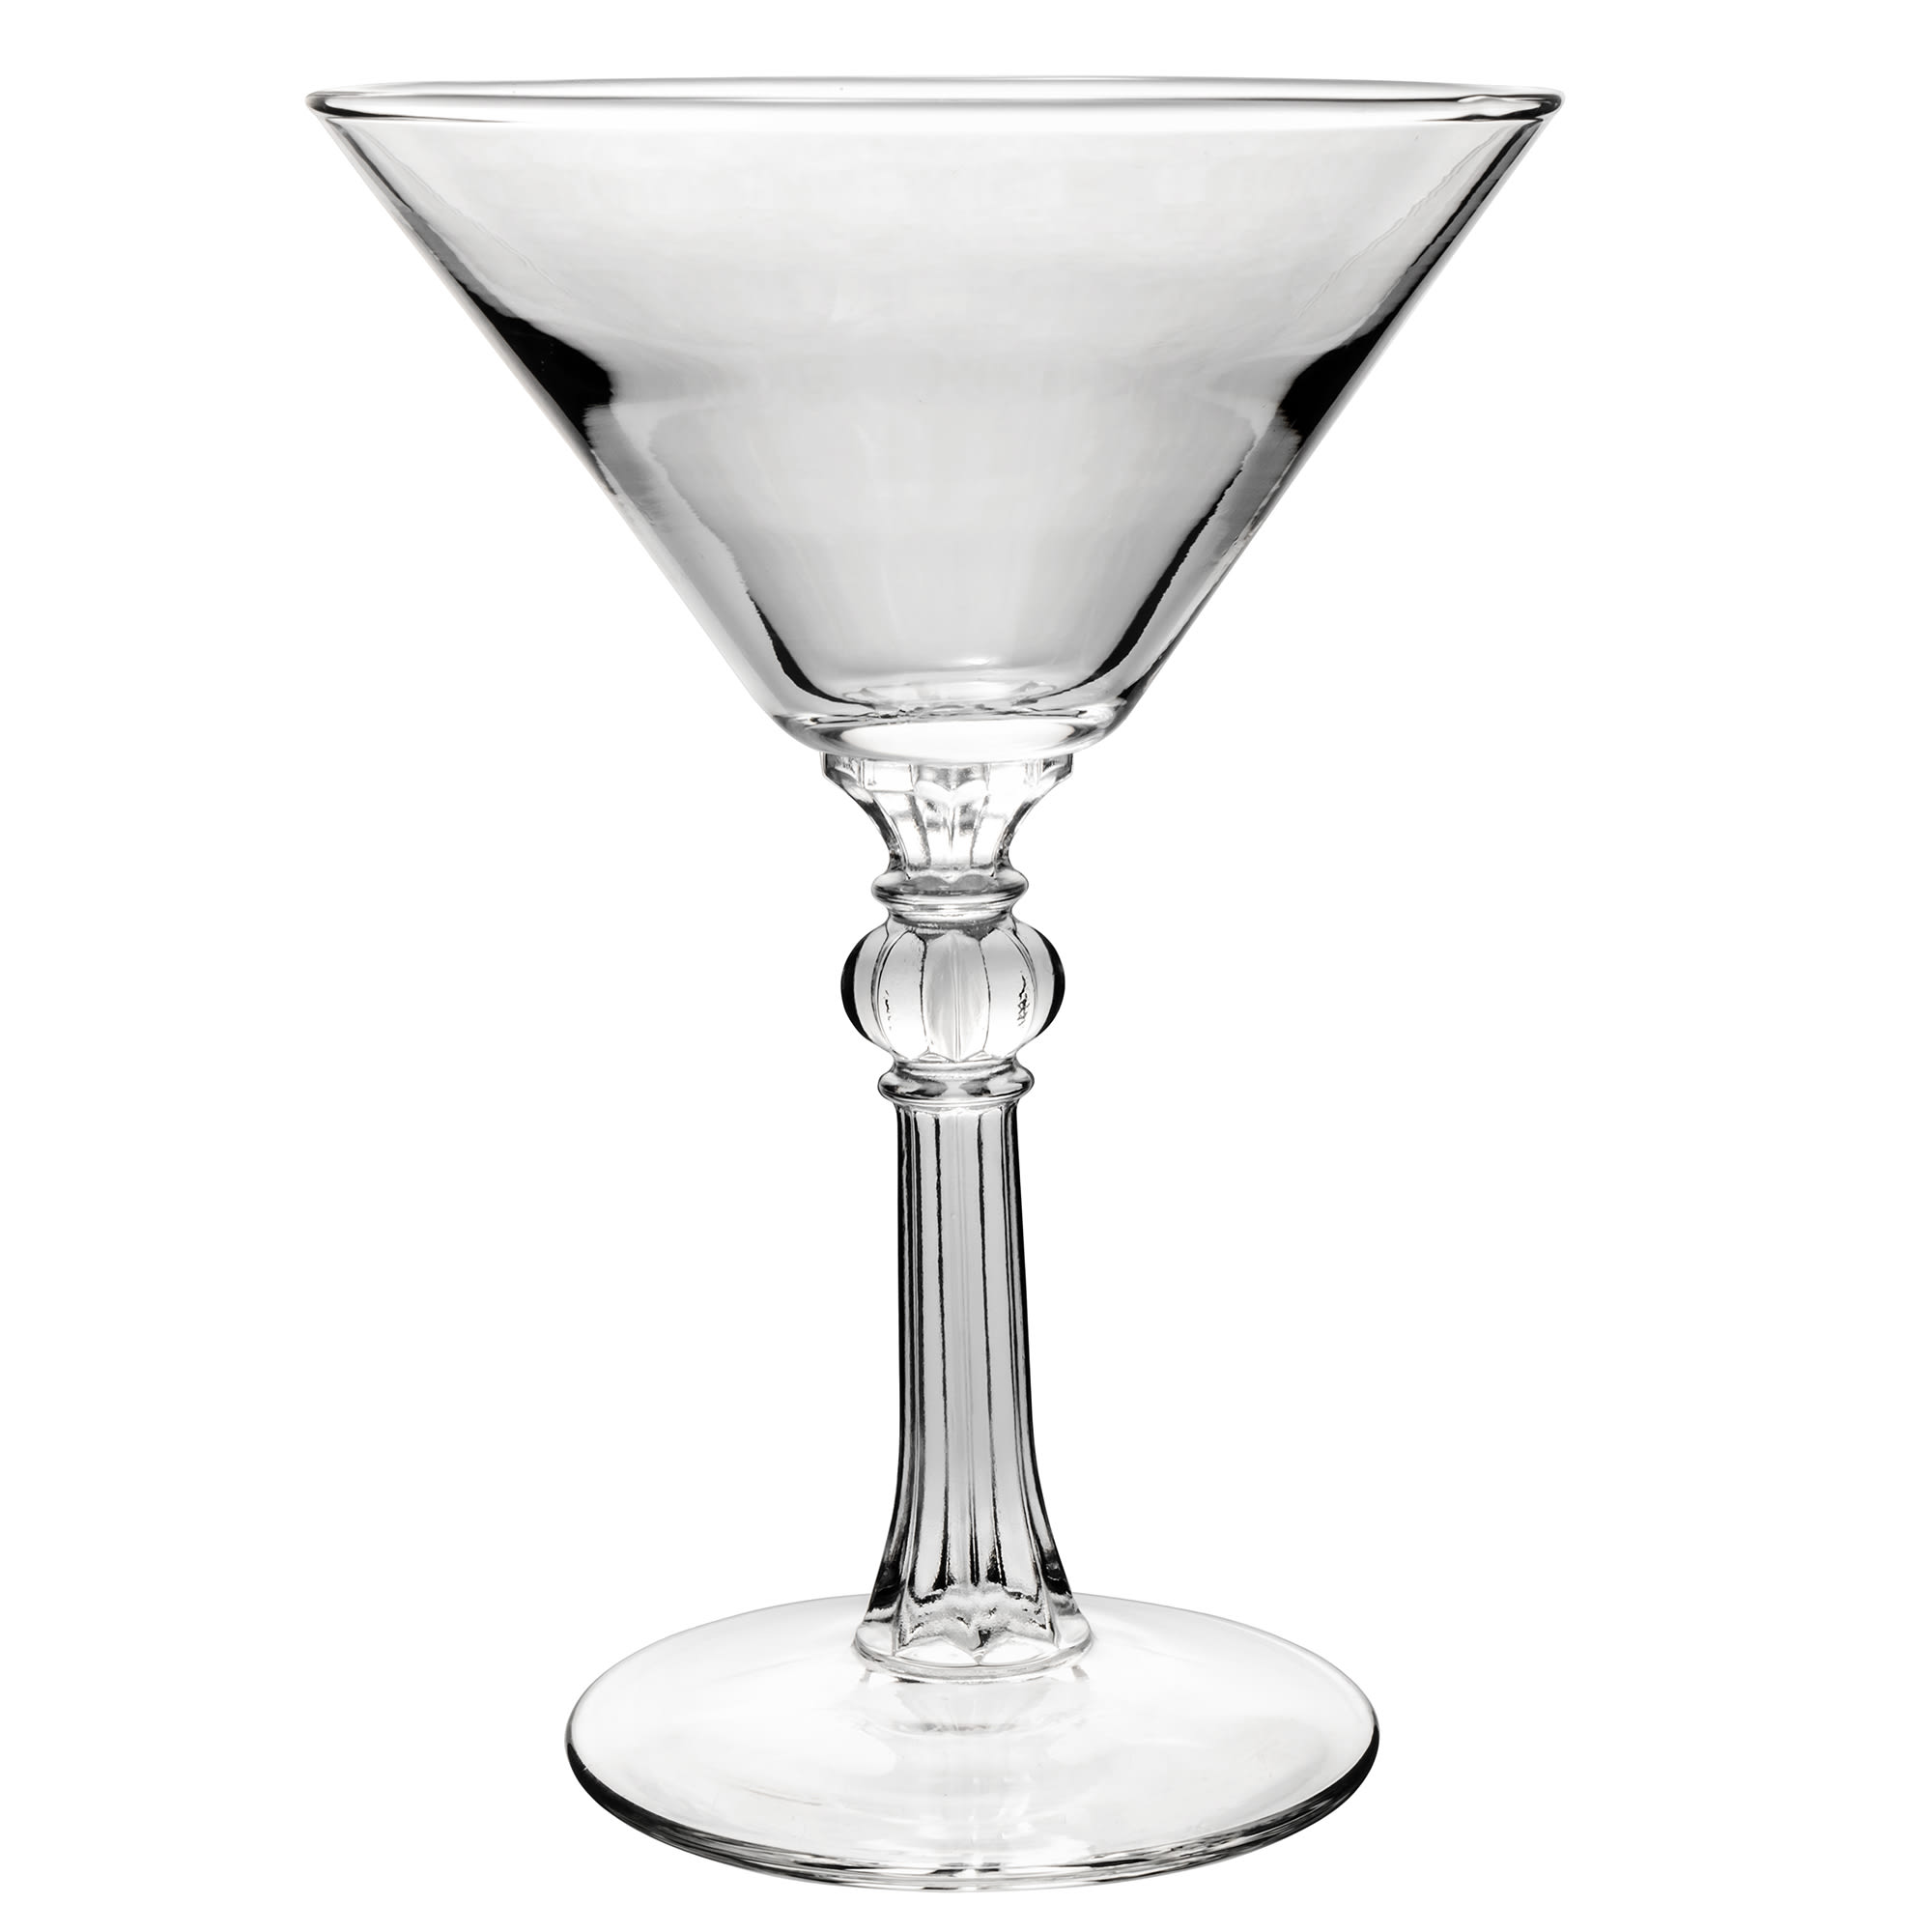 Libbey 8876 6.5 oz Cocktail Glass - Safedge Rim Guarantee